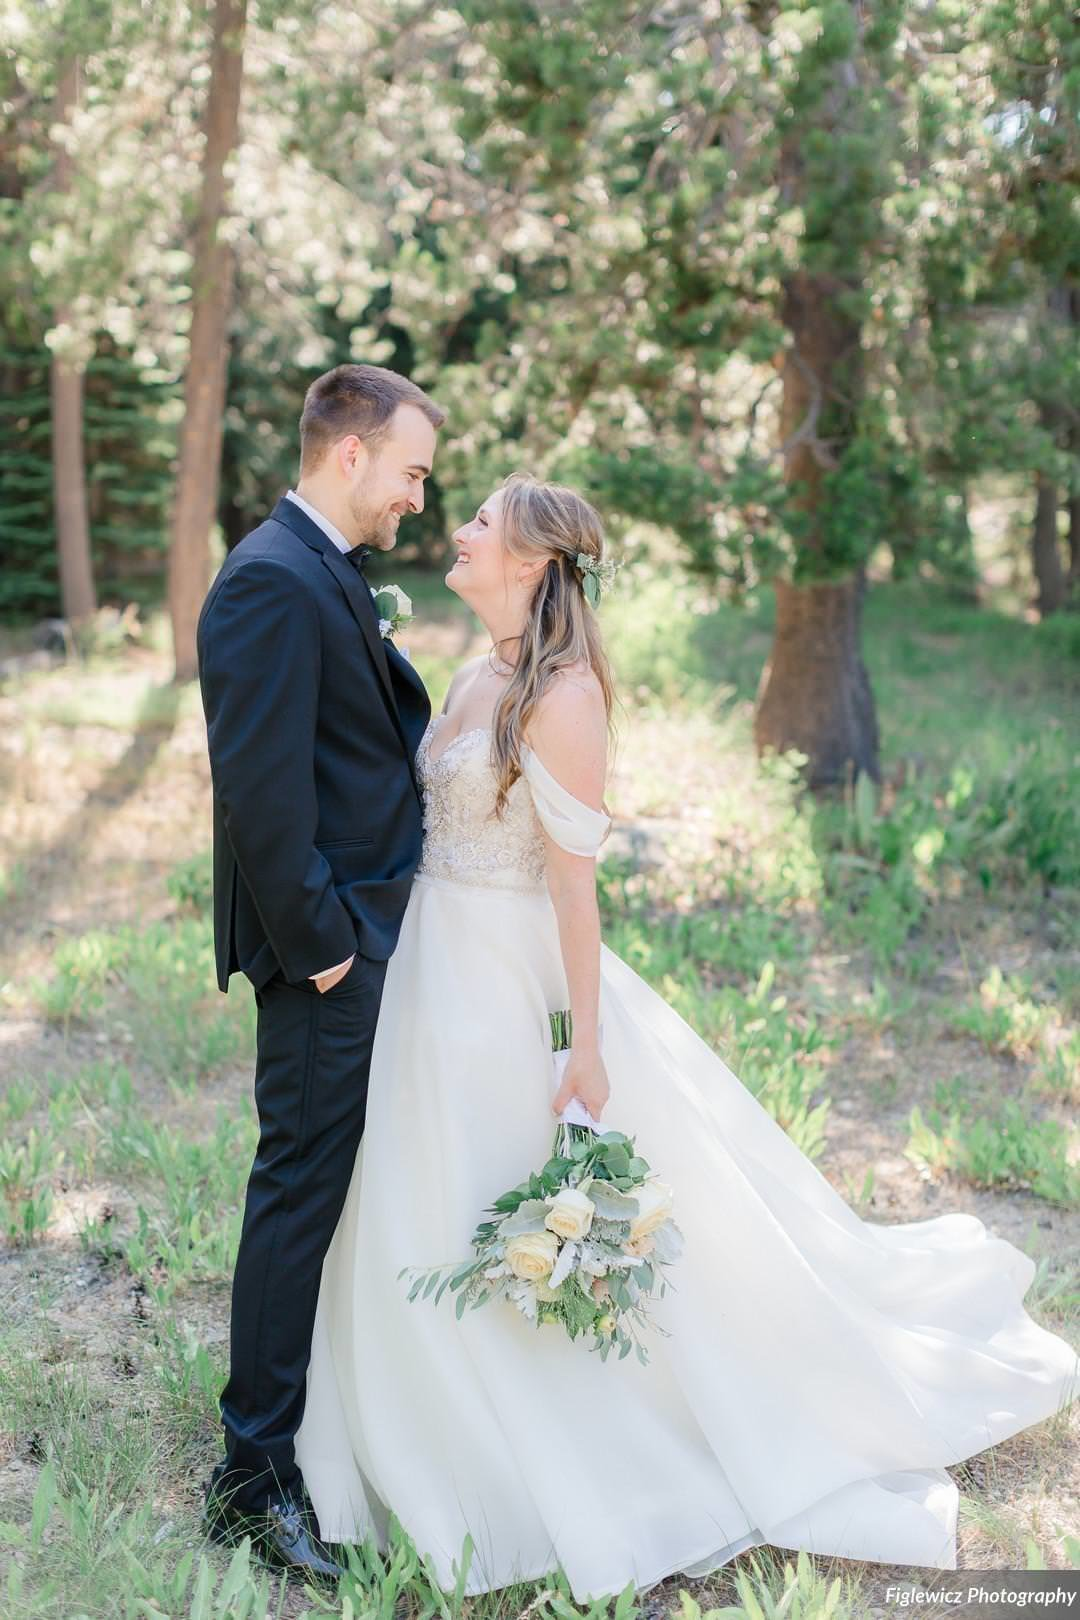 Garden_Tinsley_FiglewiczPhotography_LakeTahoeWeddingSquawValleyCreekTaylorBrendan00067_big